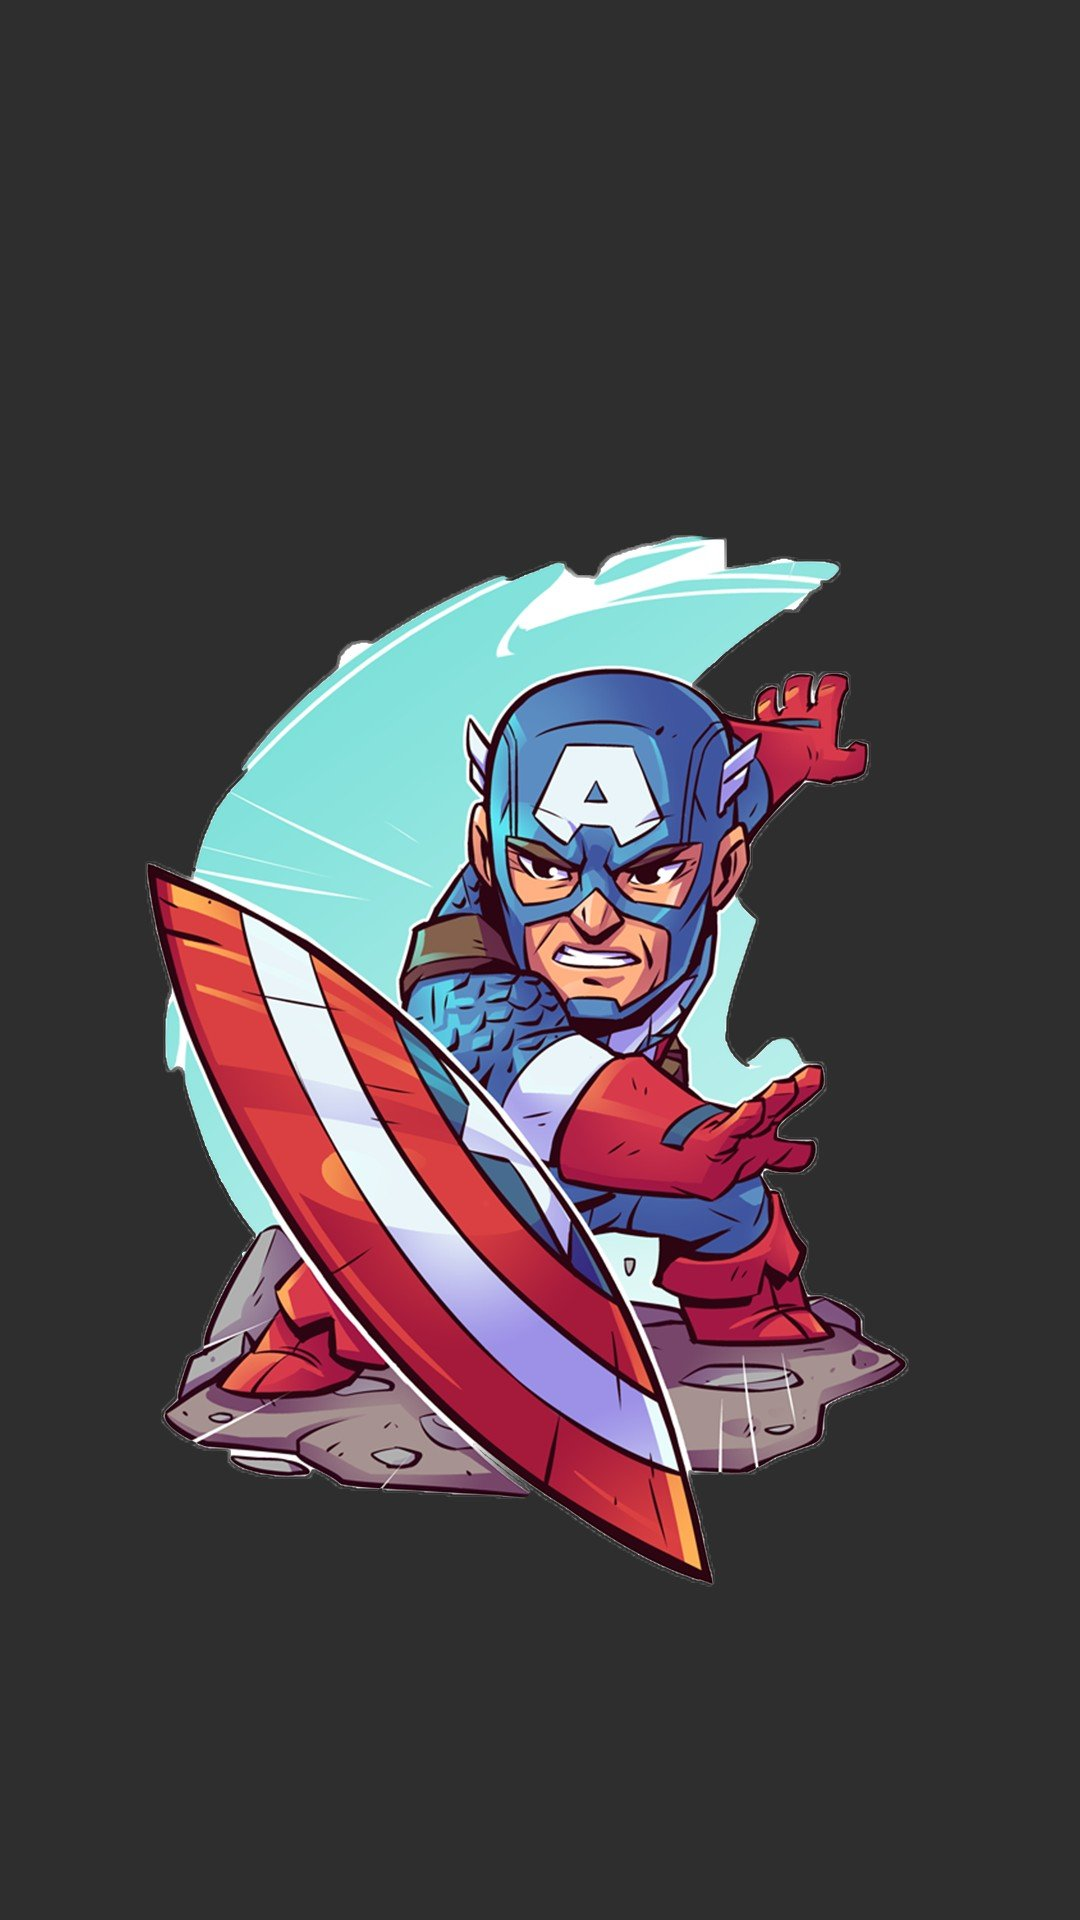 Superhero marvel comics captain america hd wallpapers - Captain america hd mobile wallpaper ...